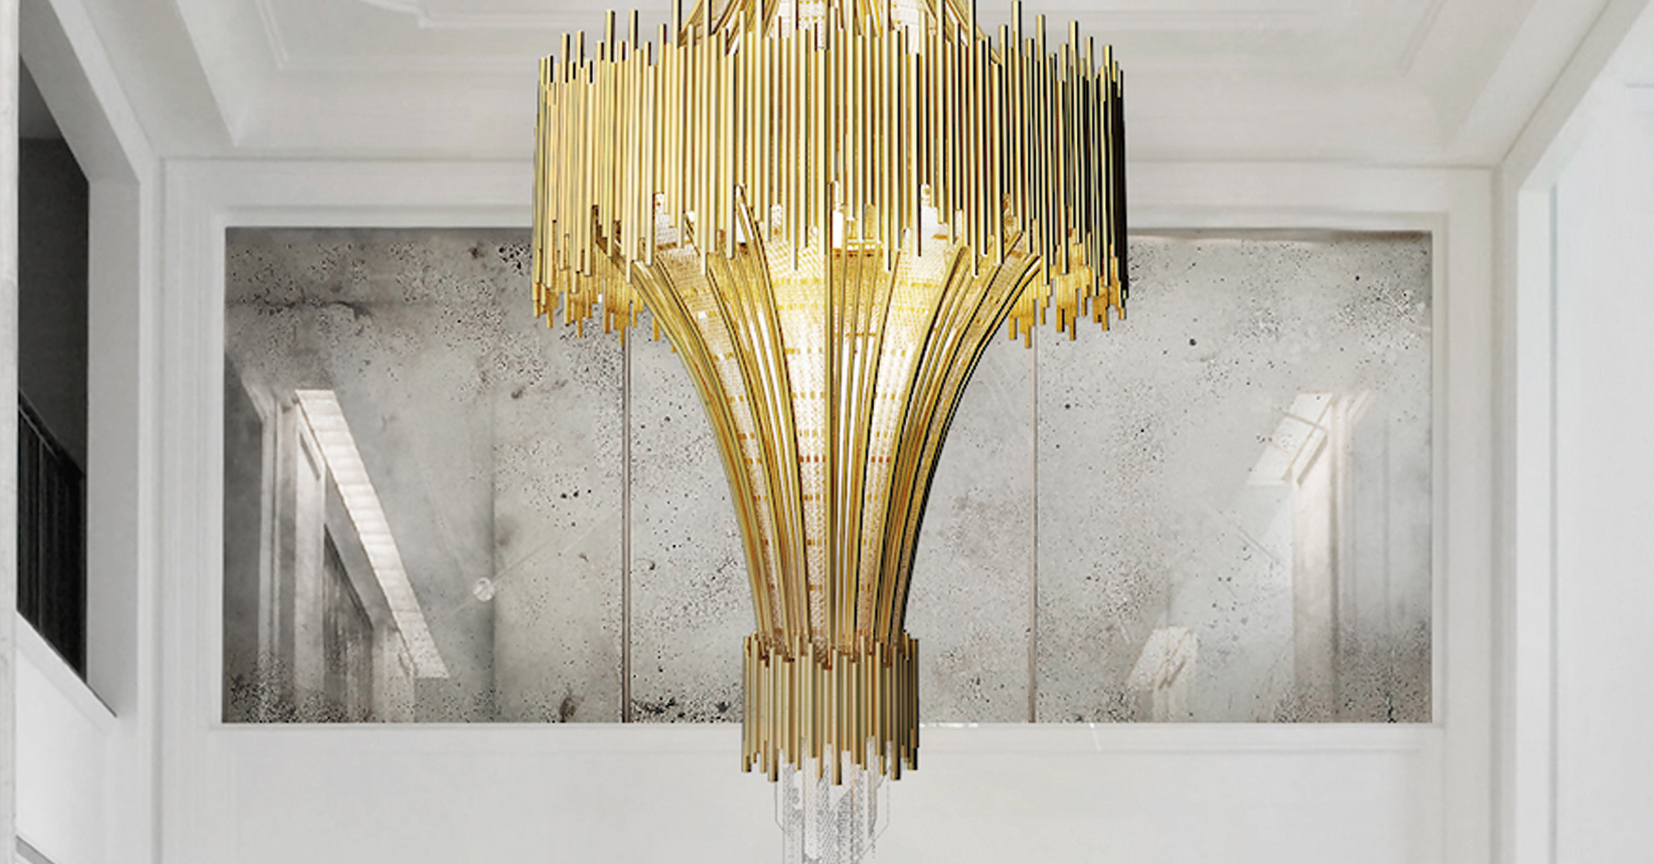 Modern Lighting: discovering Swarovski crystals luxurious bathrooms The best lighting for the most luxurious bathrooms foto nova1 luxurious bathrooms The best lighting for the most luxurious bathrooms foto nova1